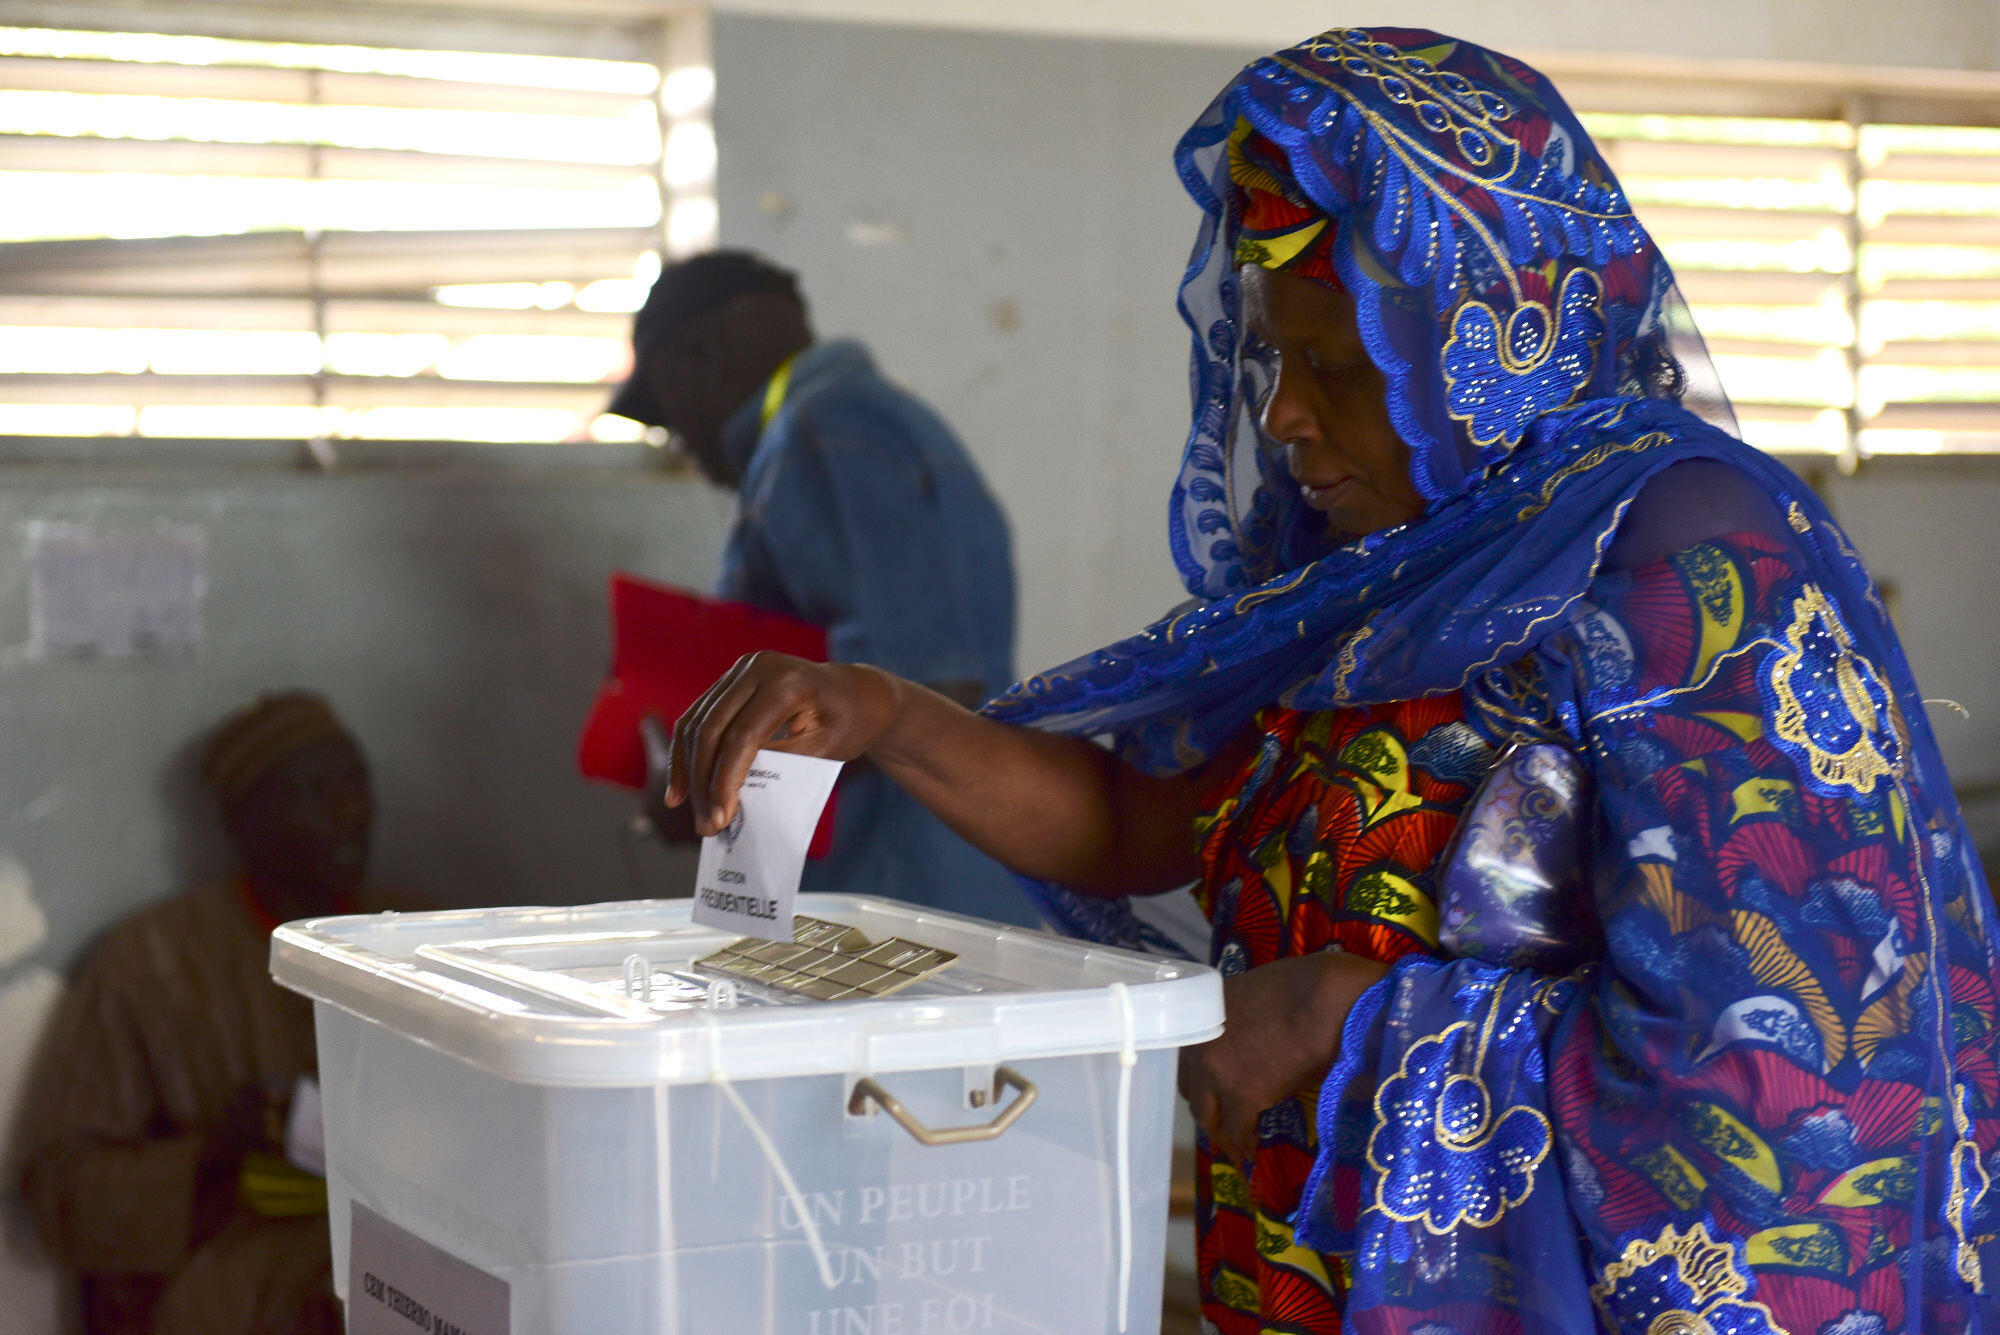 A woman casts her ballot in Senegal's presidential elections at a polling station in Fatick on 24 February 2019.